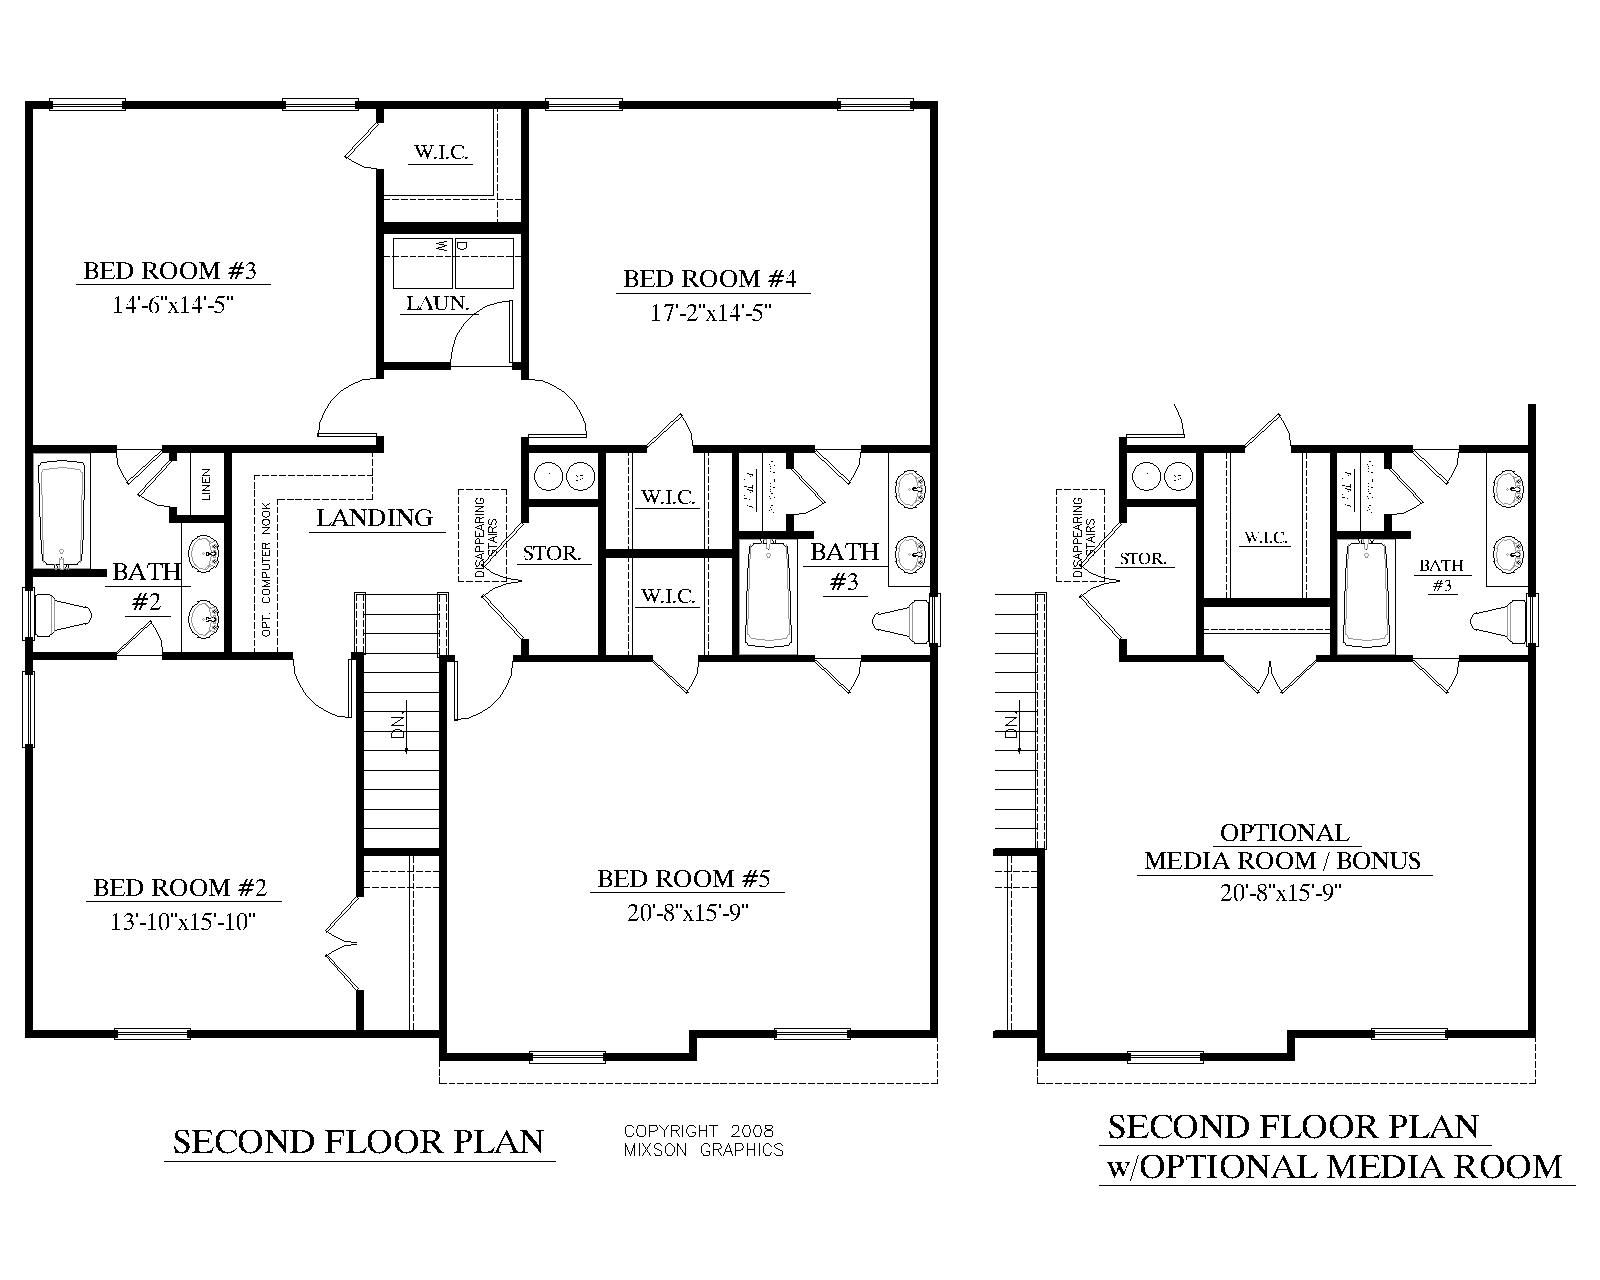 house plan 2691 a mccormick 2nd floor plan 2691 square feet 39 0 wide by 42 0 deep 5 bedrooms3 12 baths formal dining room optional hisher